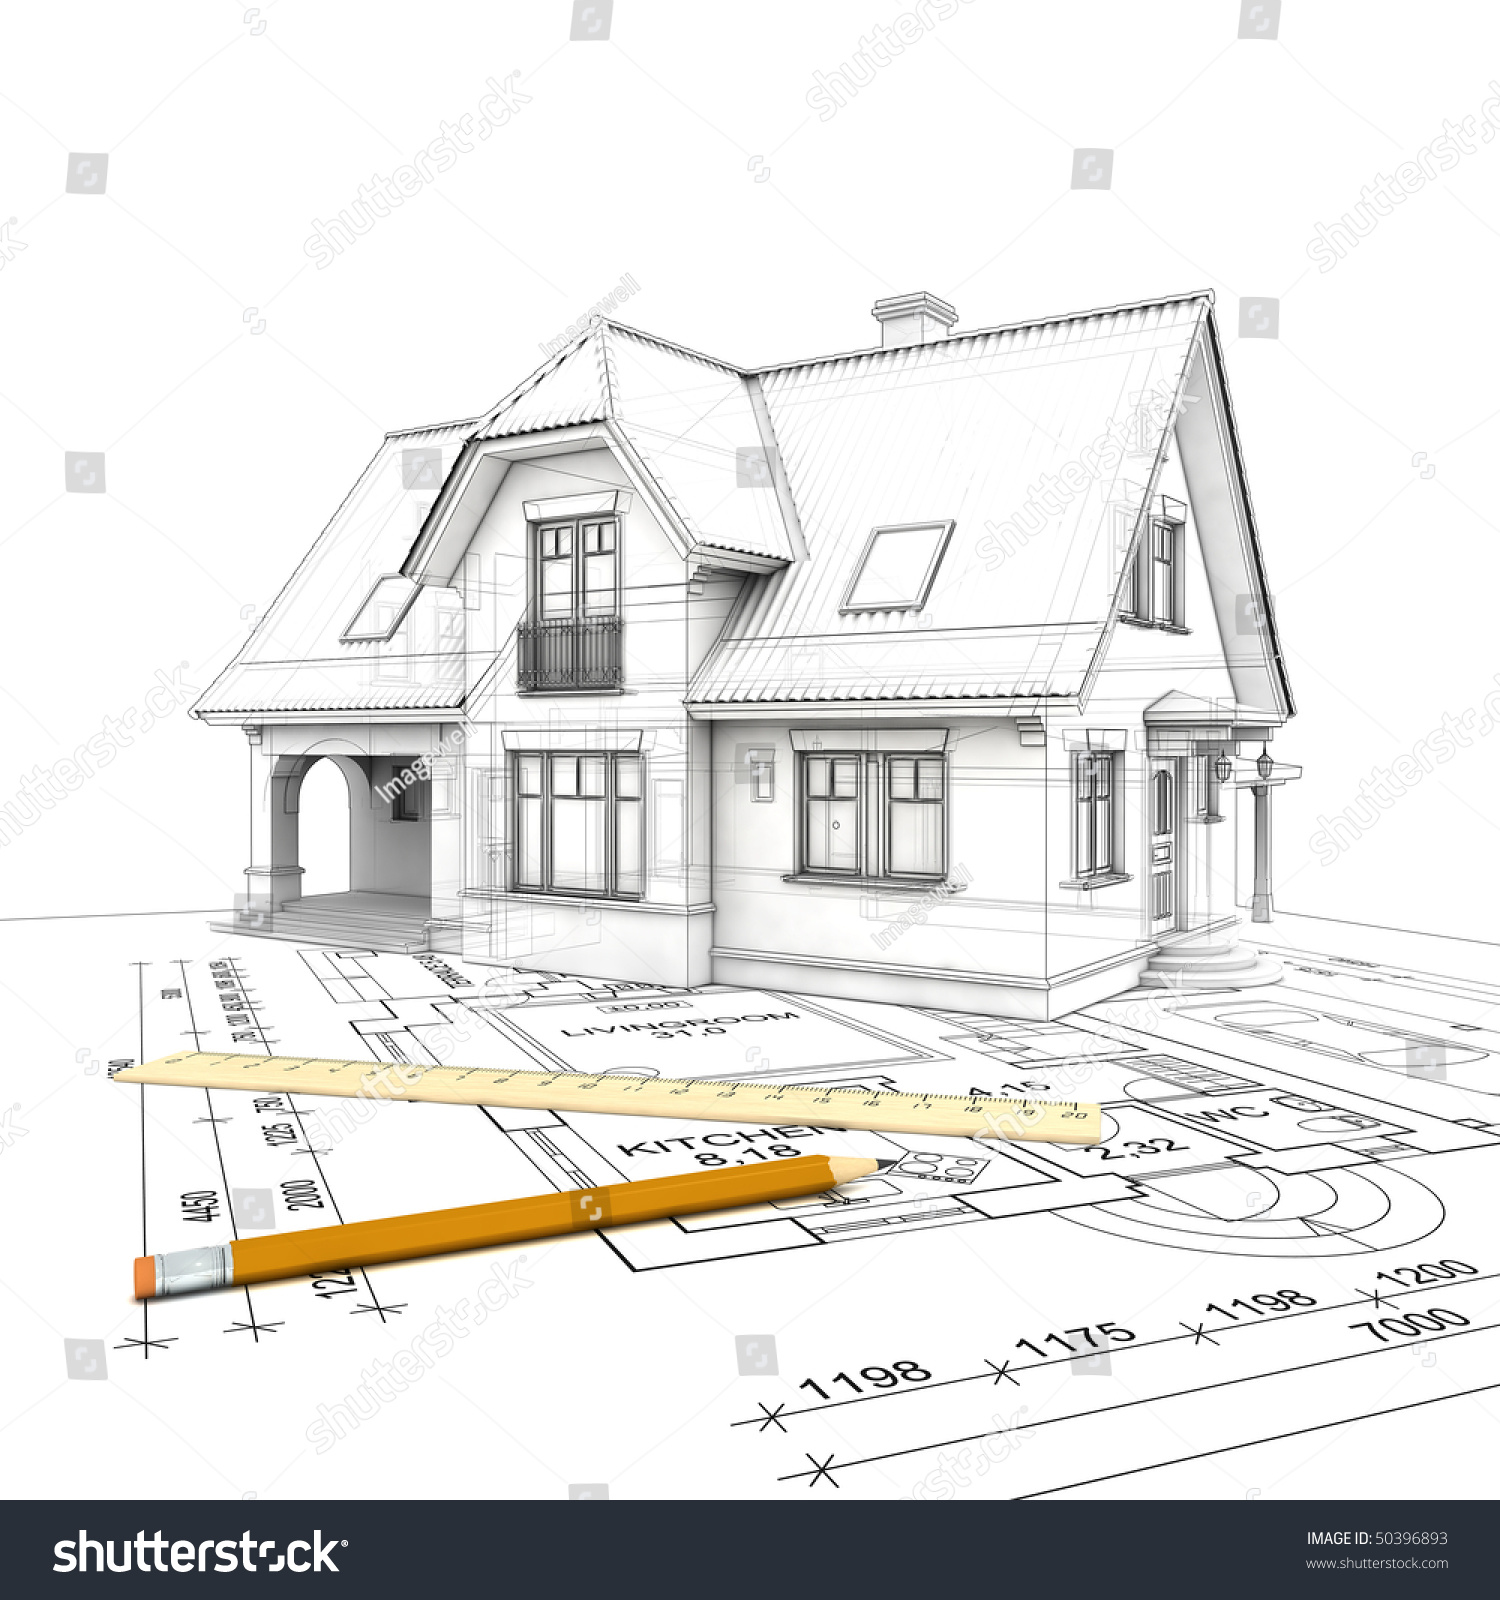 a stylized house model with floor plan  ruler and pencil  isolated on white  background. Stylized House Model Floor Plan Ruler Stock Illustration 50396893